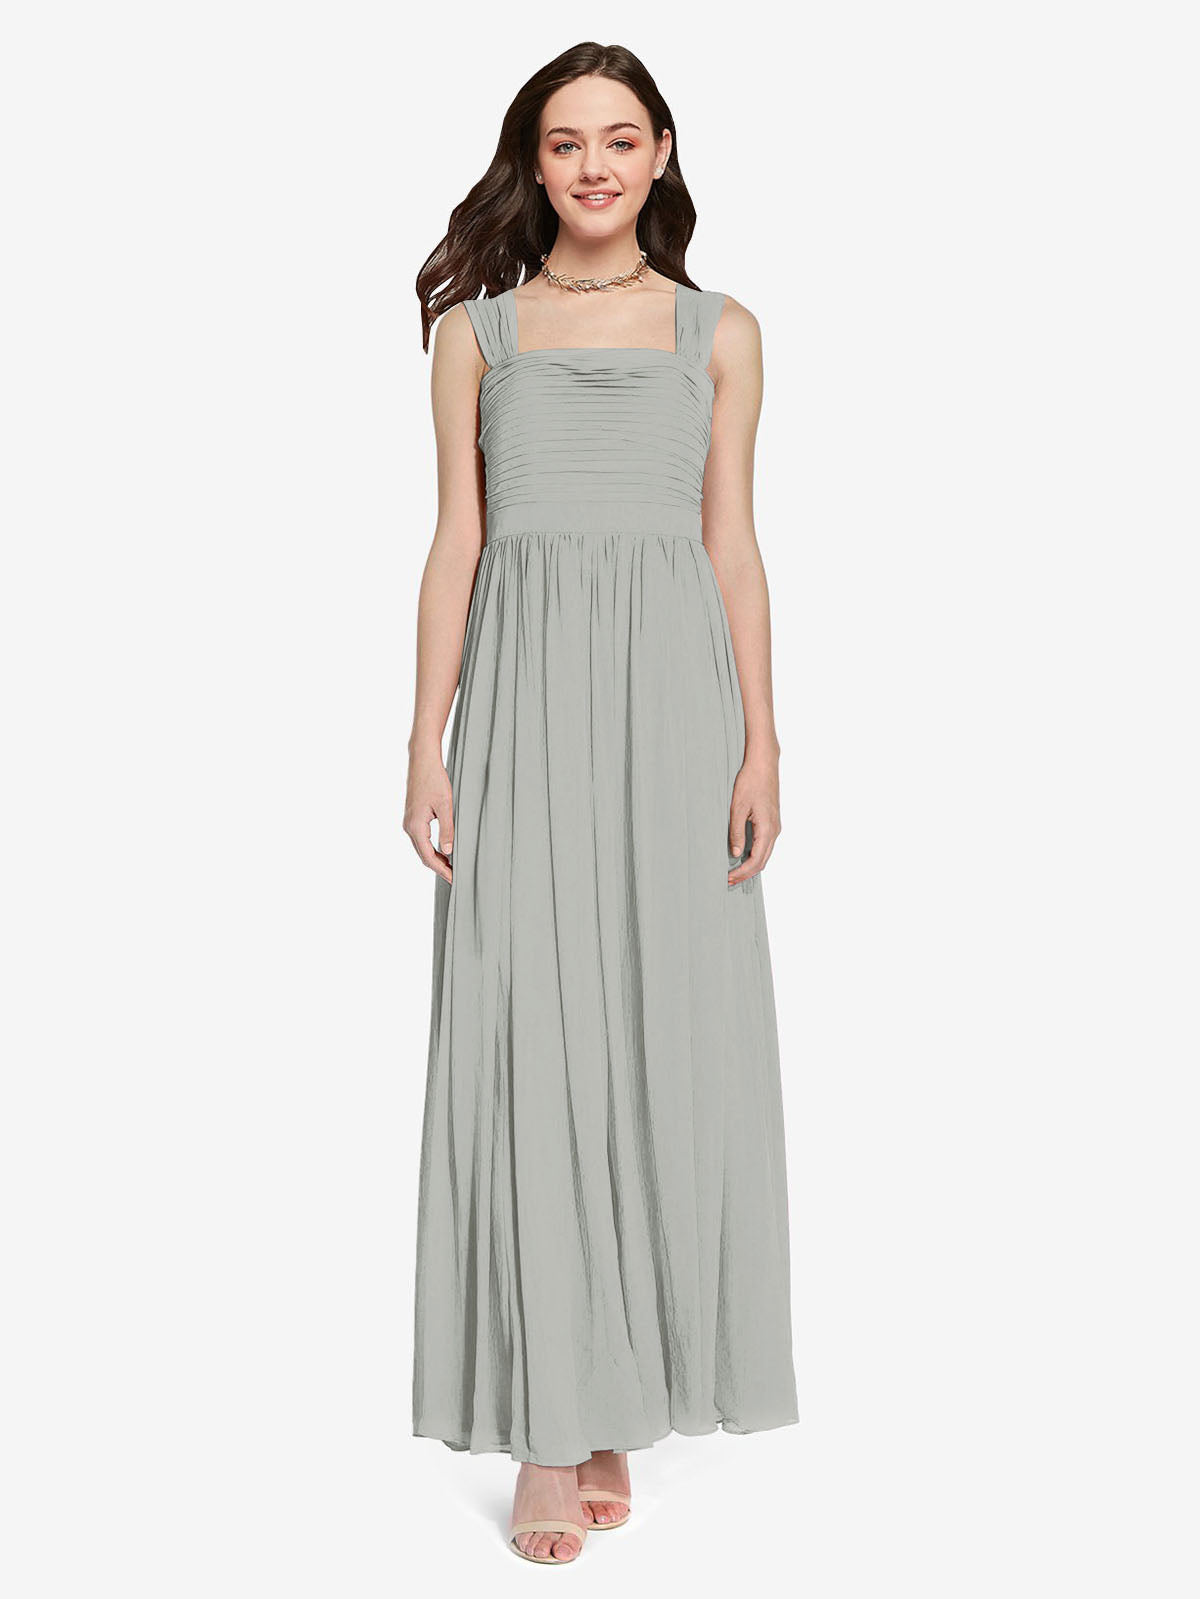 Long A-Line Square Sleeveless Silver Chiffon Bridesmaid Dress Aldridge